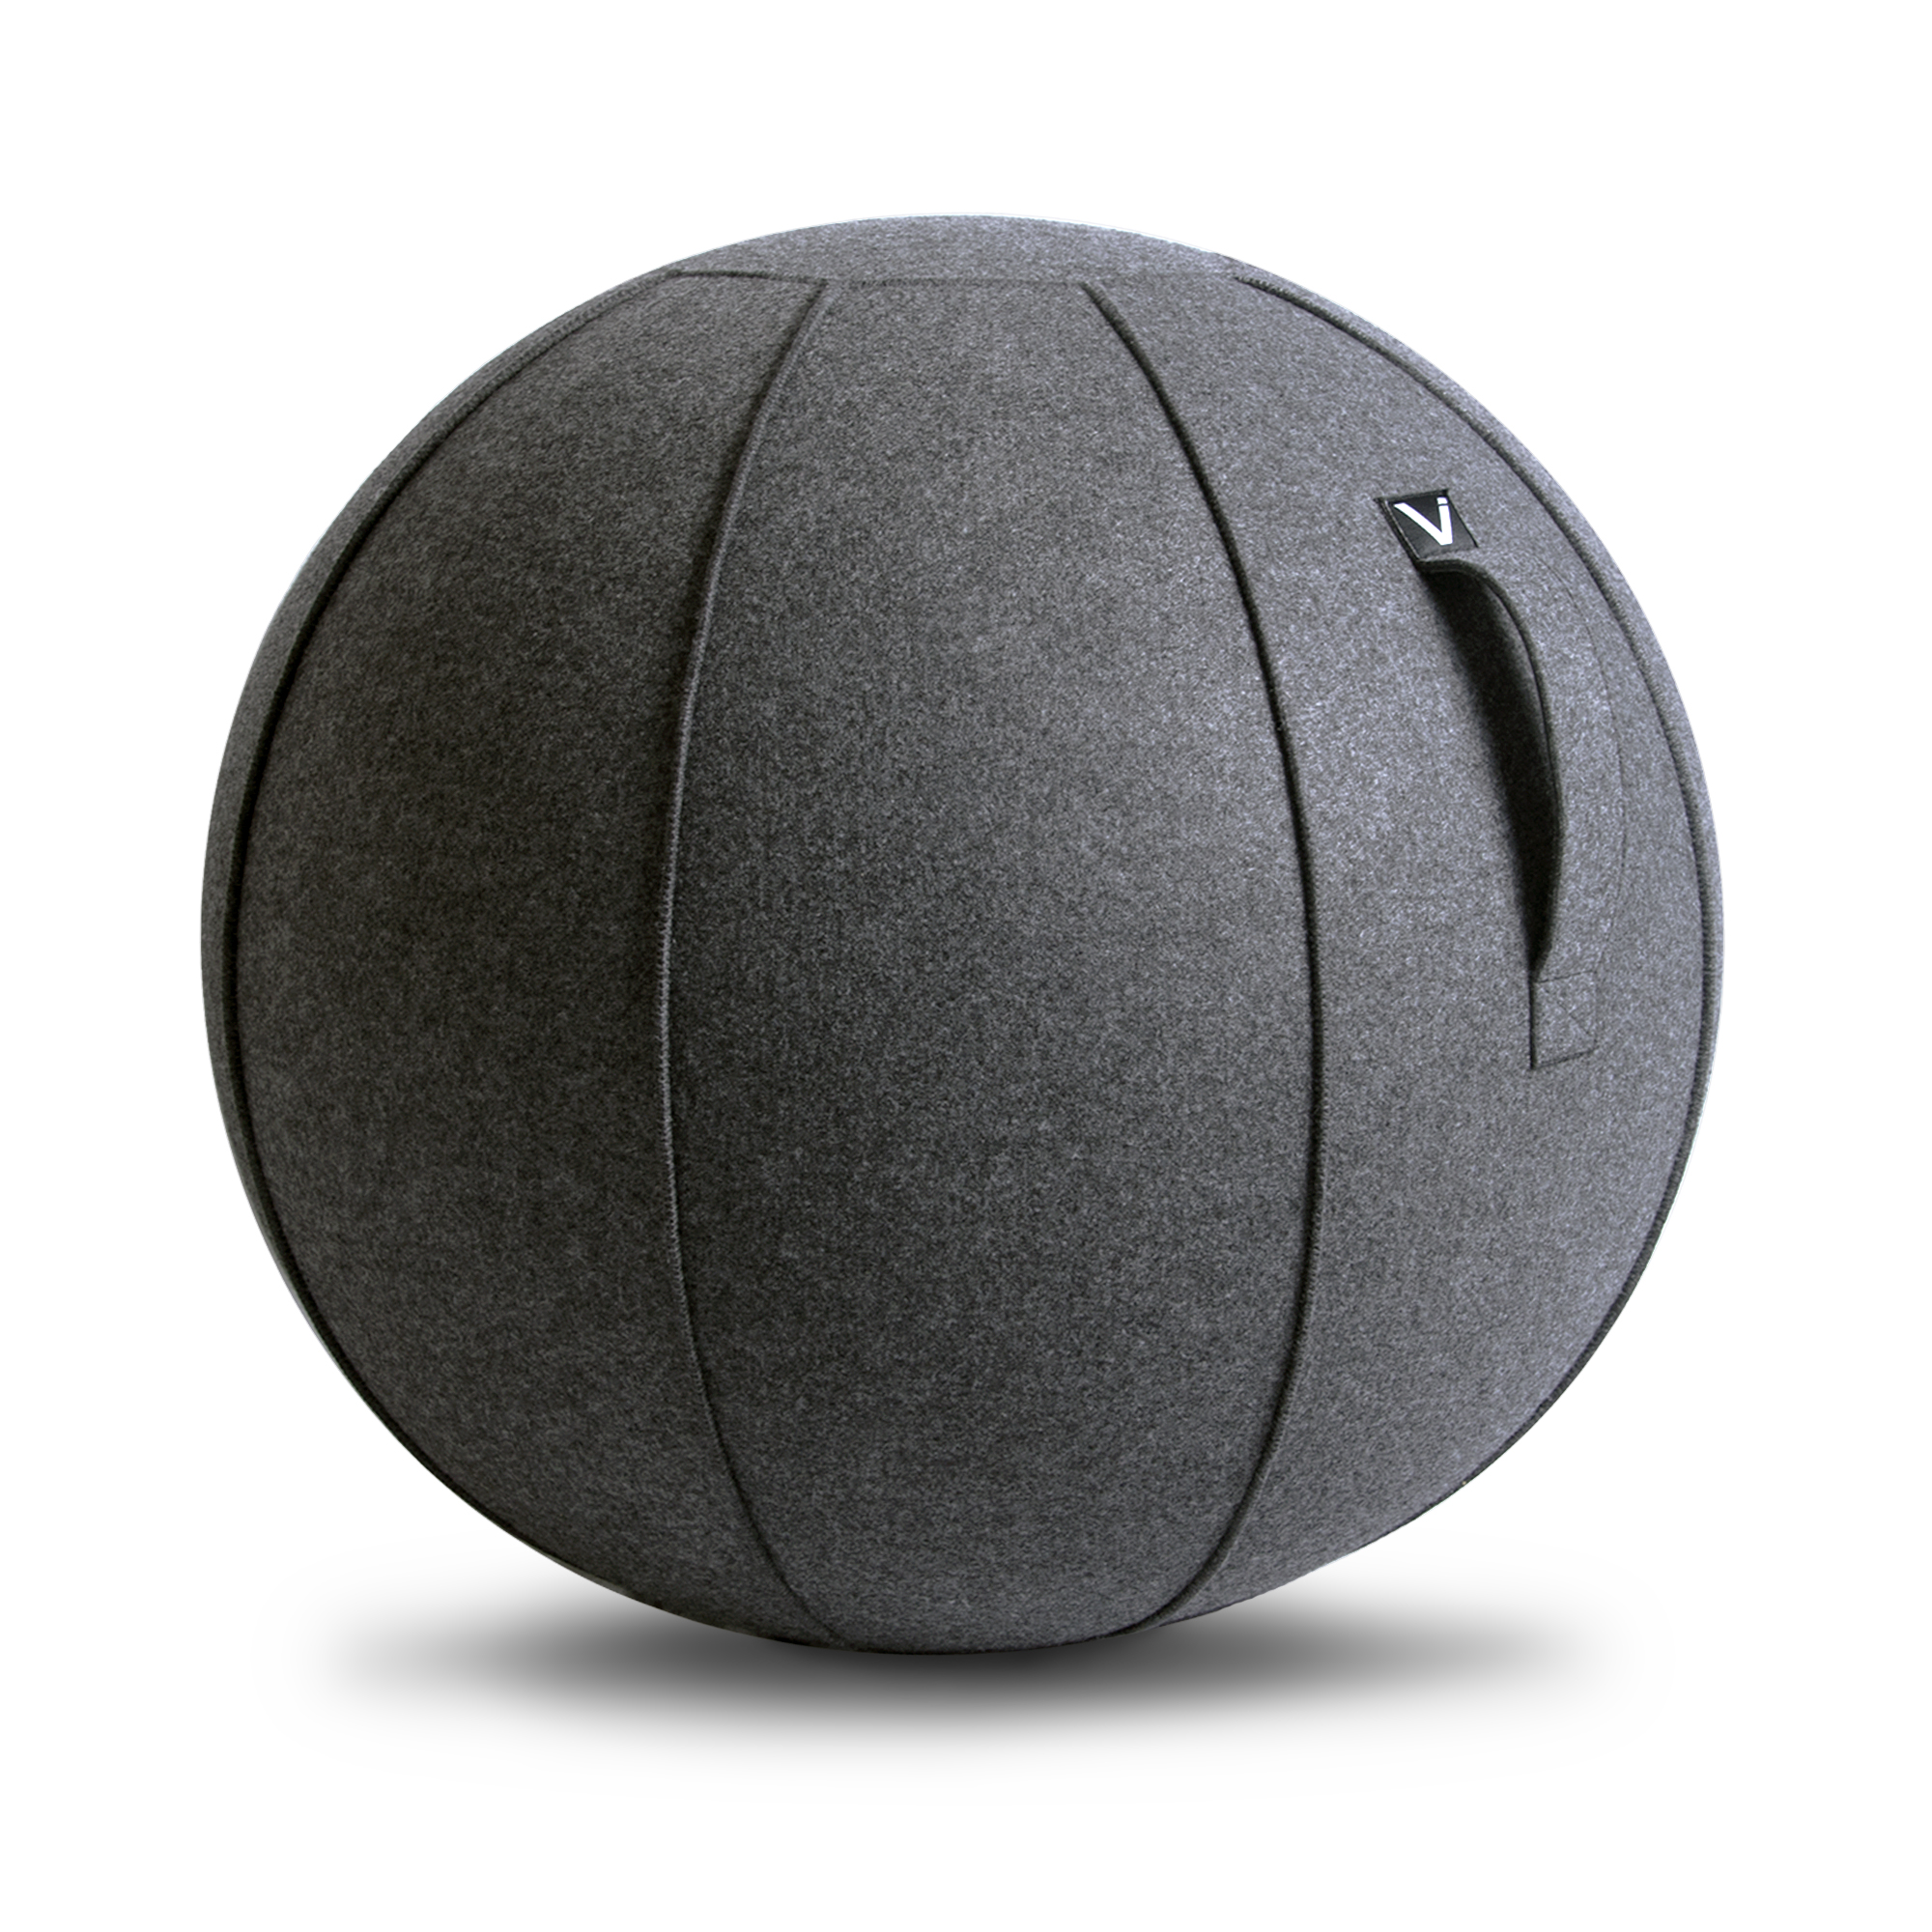 Ball Chair Office Chair Swiss Ball Pilates Physio Ball Exercise Ball Fintess Balls Pilates Fitness Chair 65cm Luno In Anthracite By Vivora